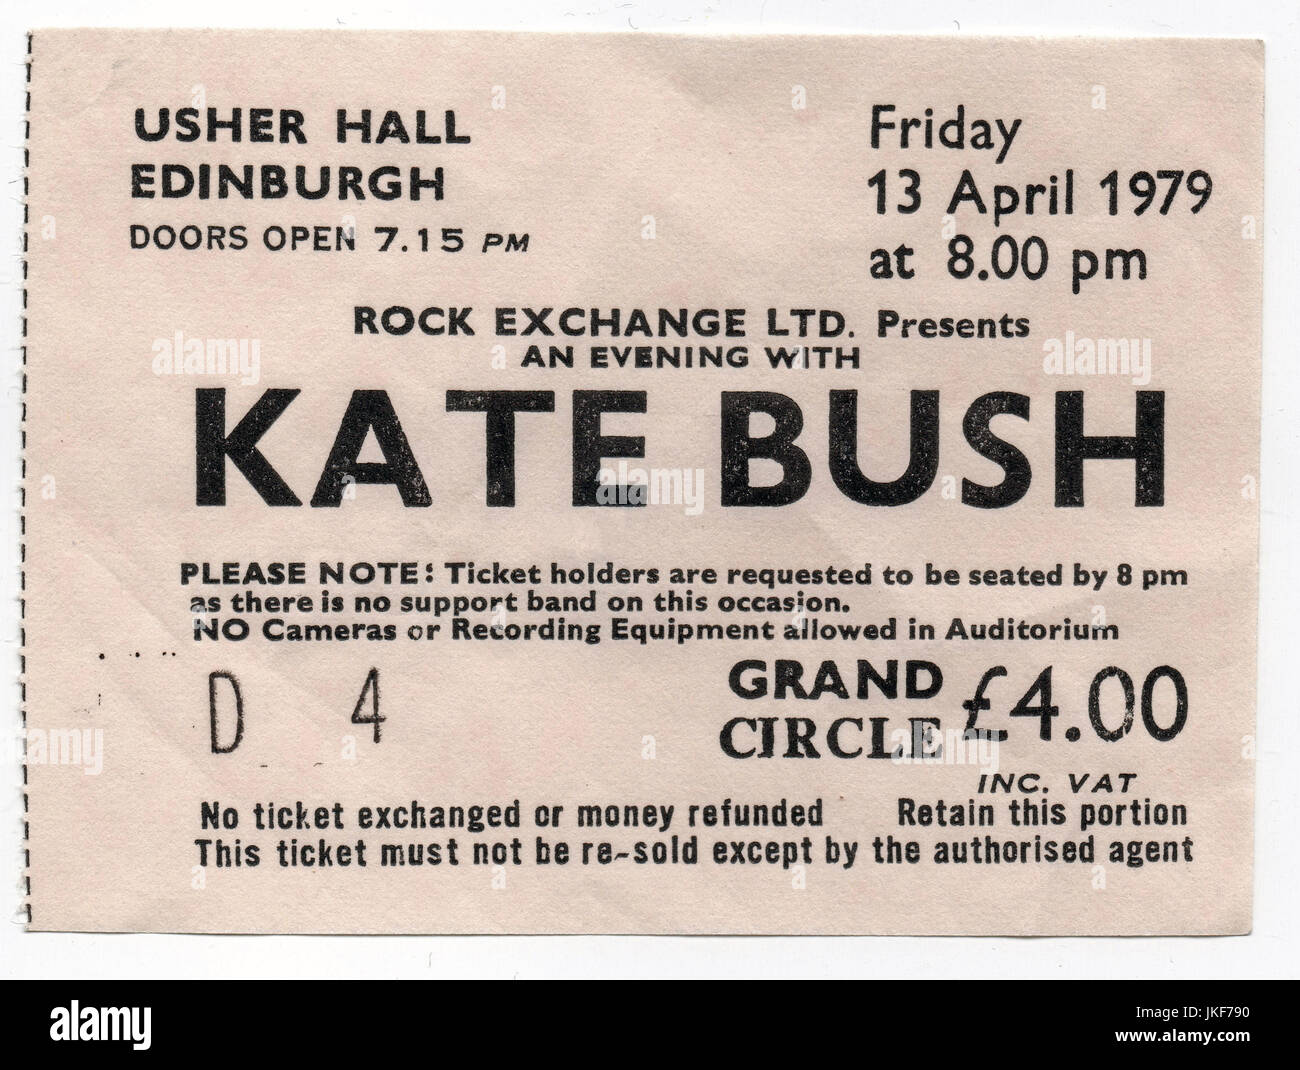 Ticket stub for a Kate Bush concert at the Usher Hall in Edinburgh, 13th April 1979. - Stock Image